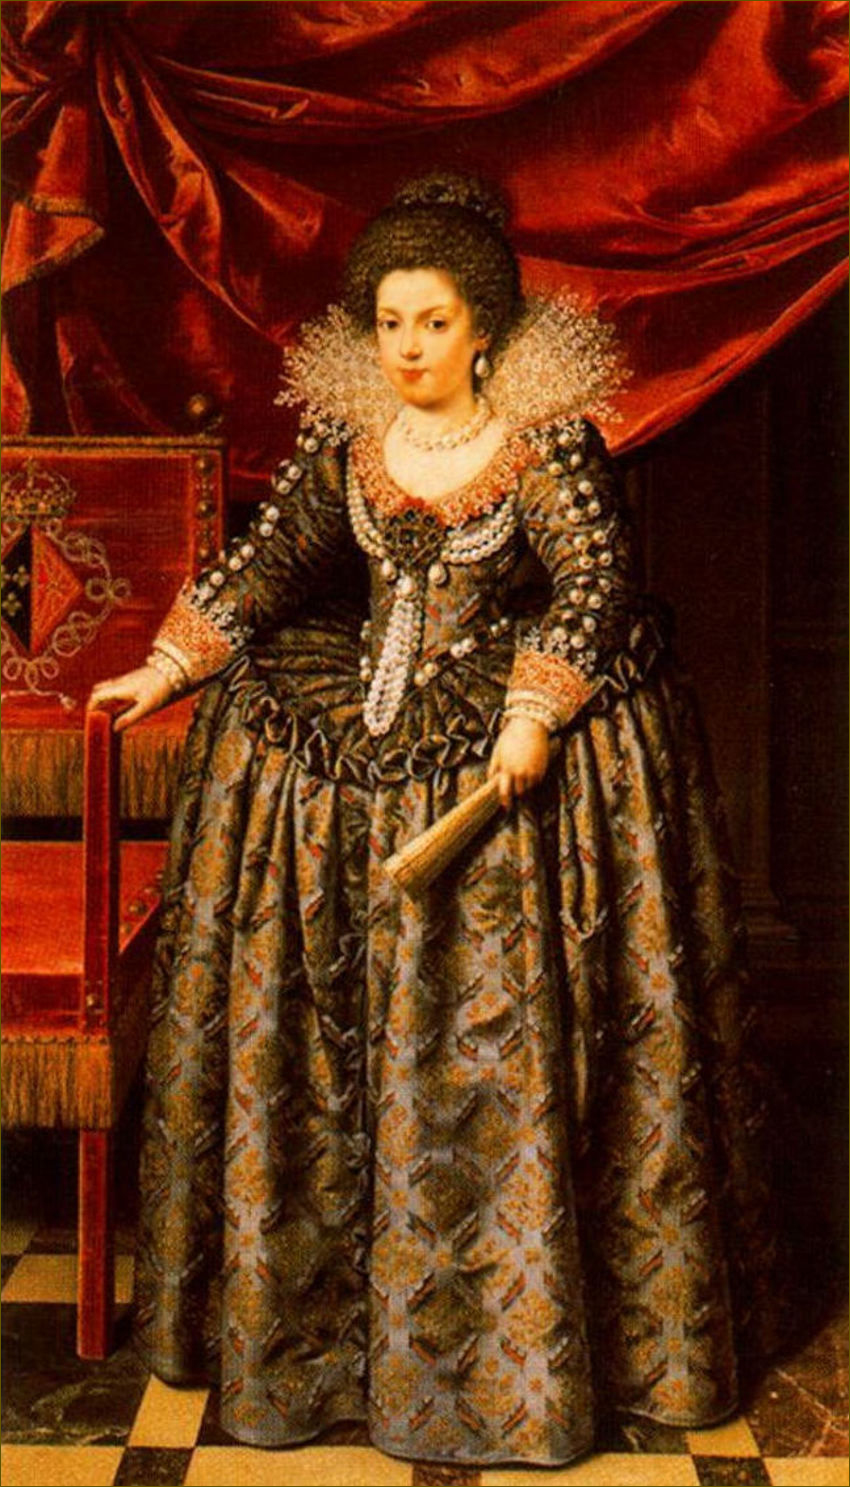 Spanish fashion in the 1600s